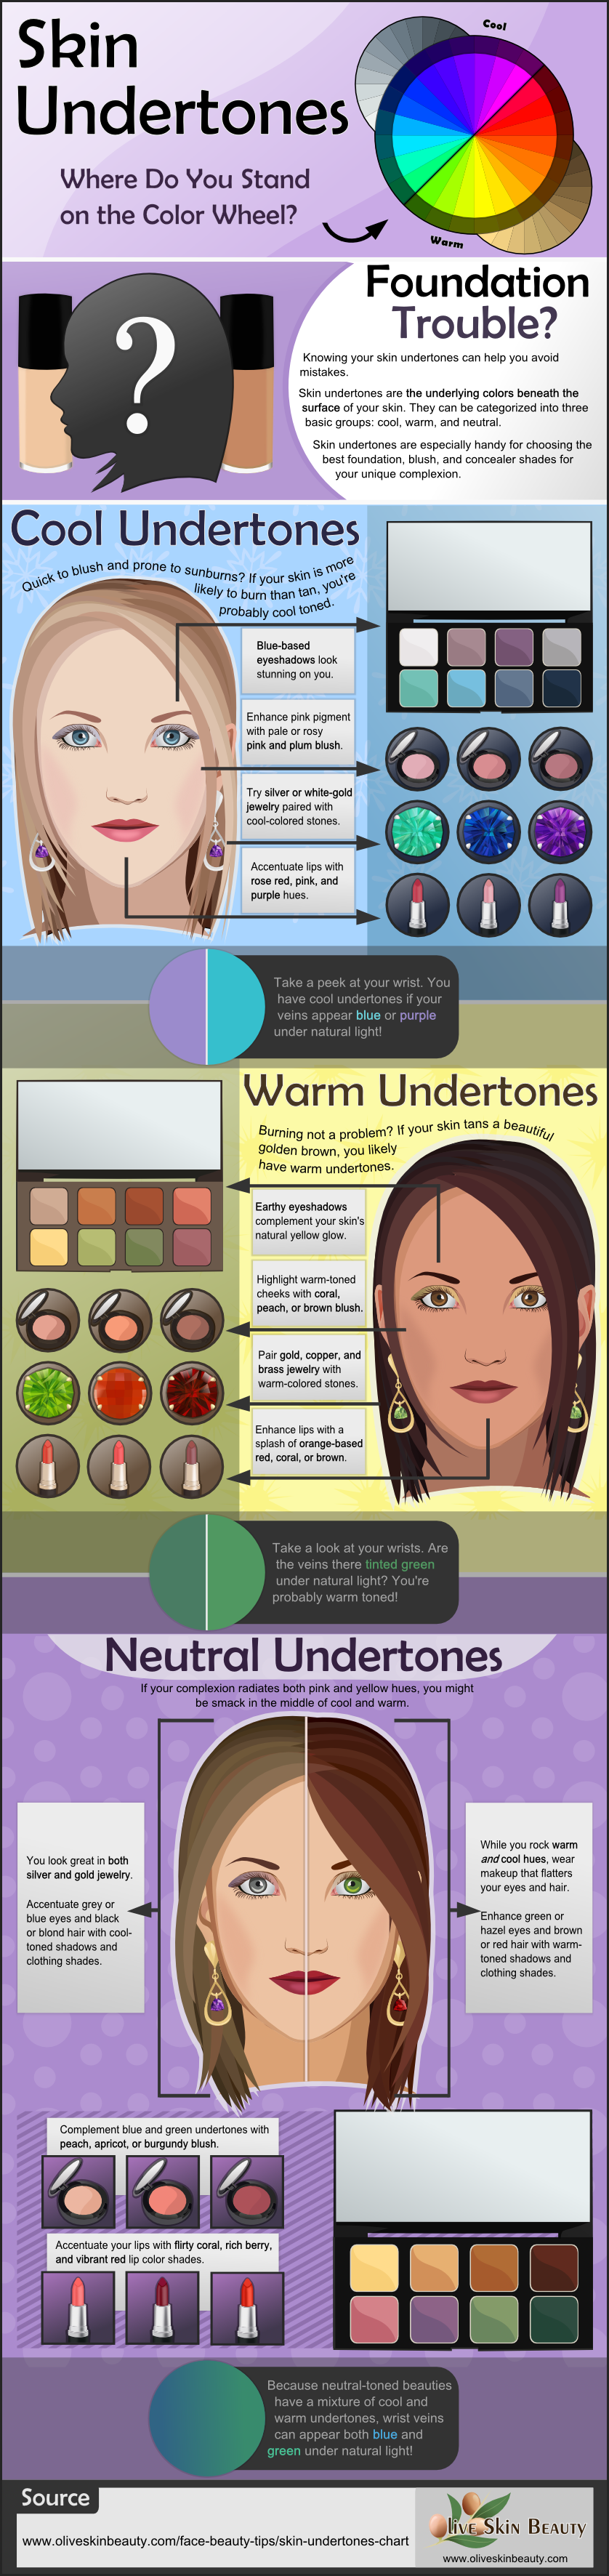 How to Determine Your Skin Tone Once and for All in 2020